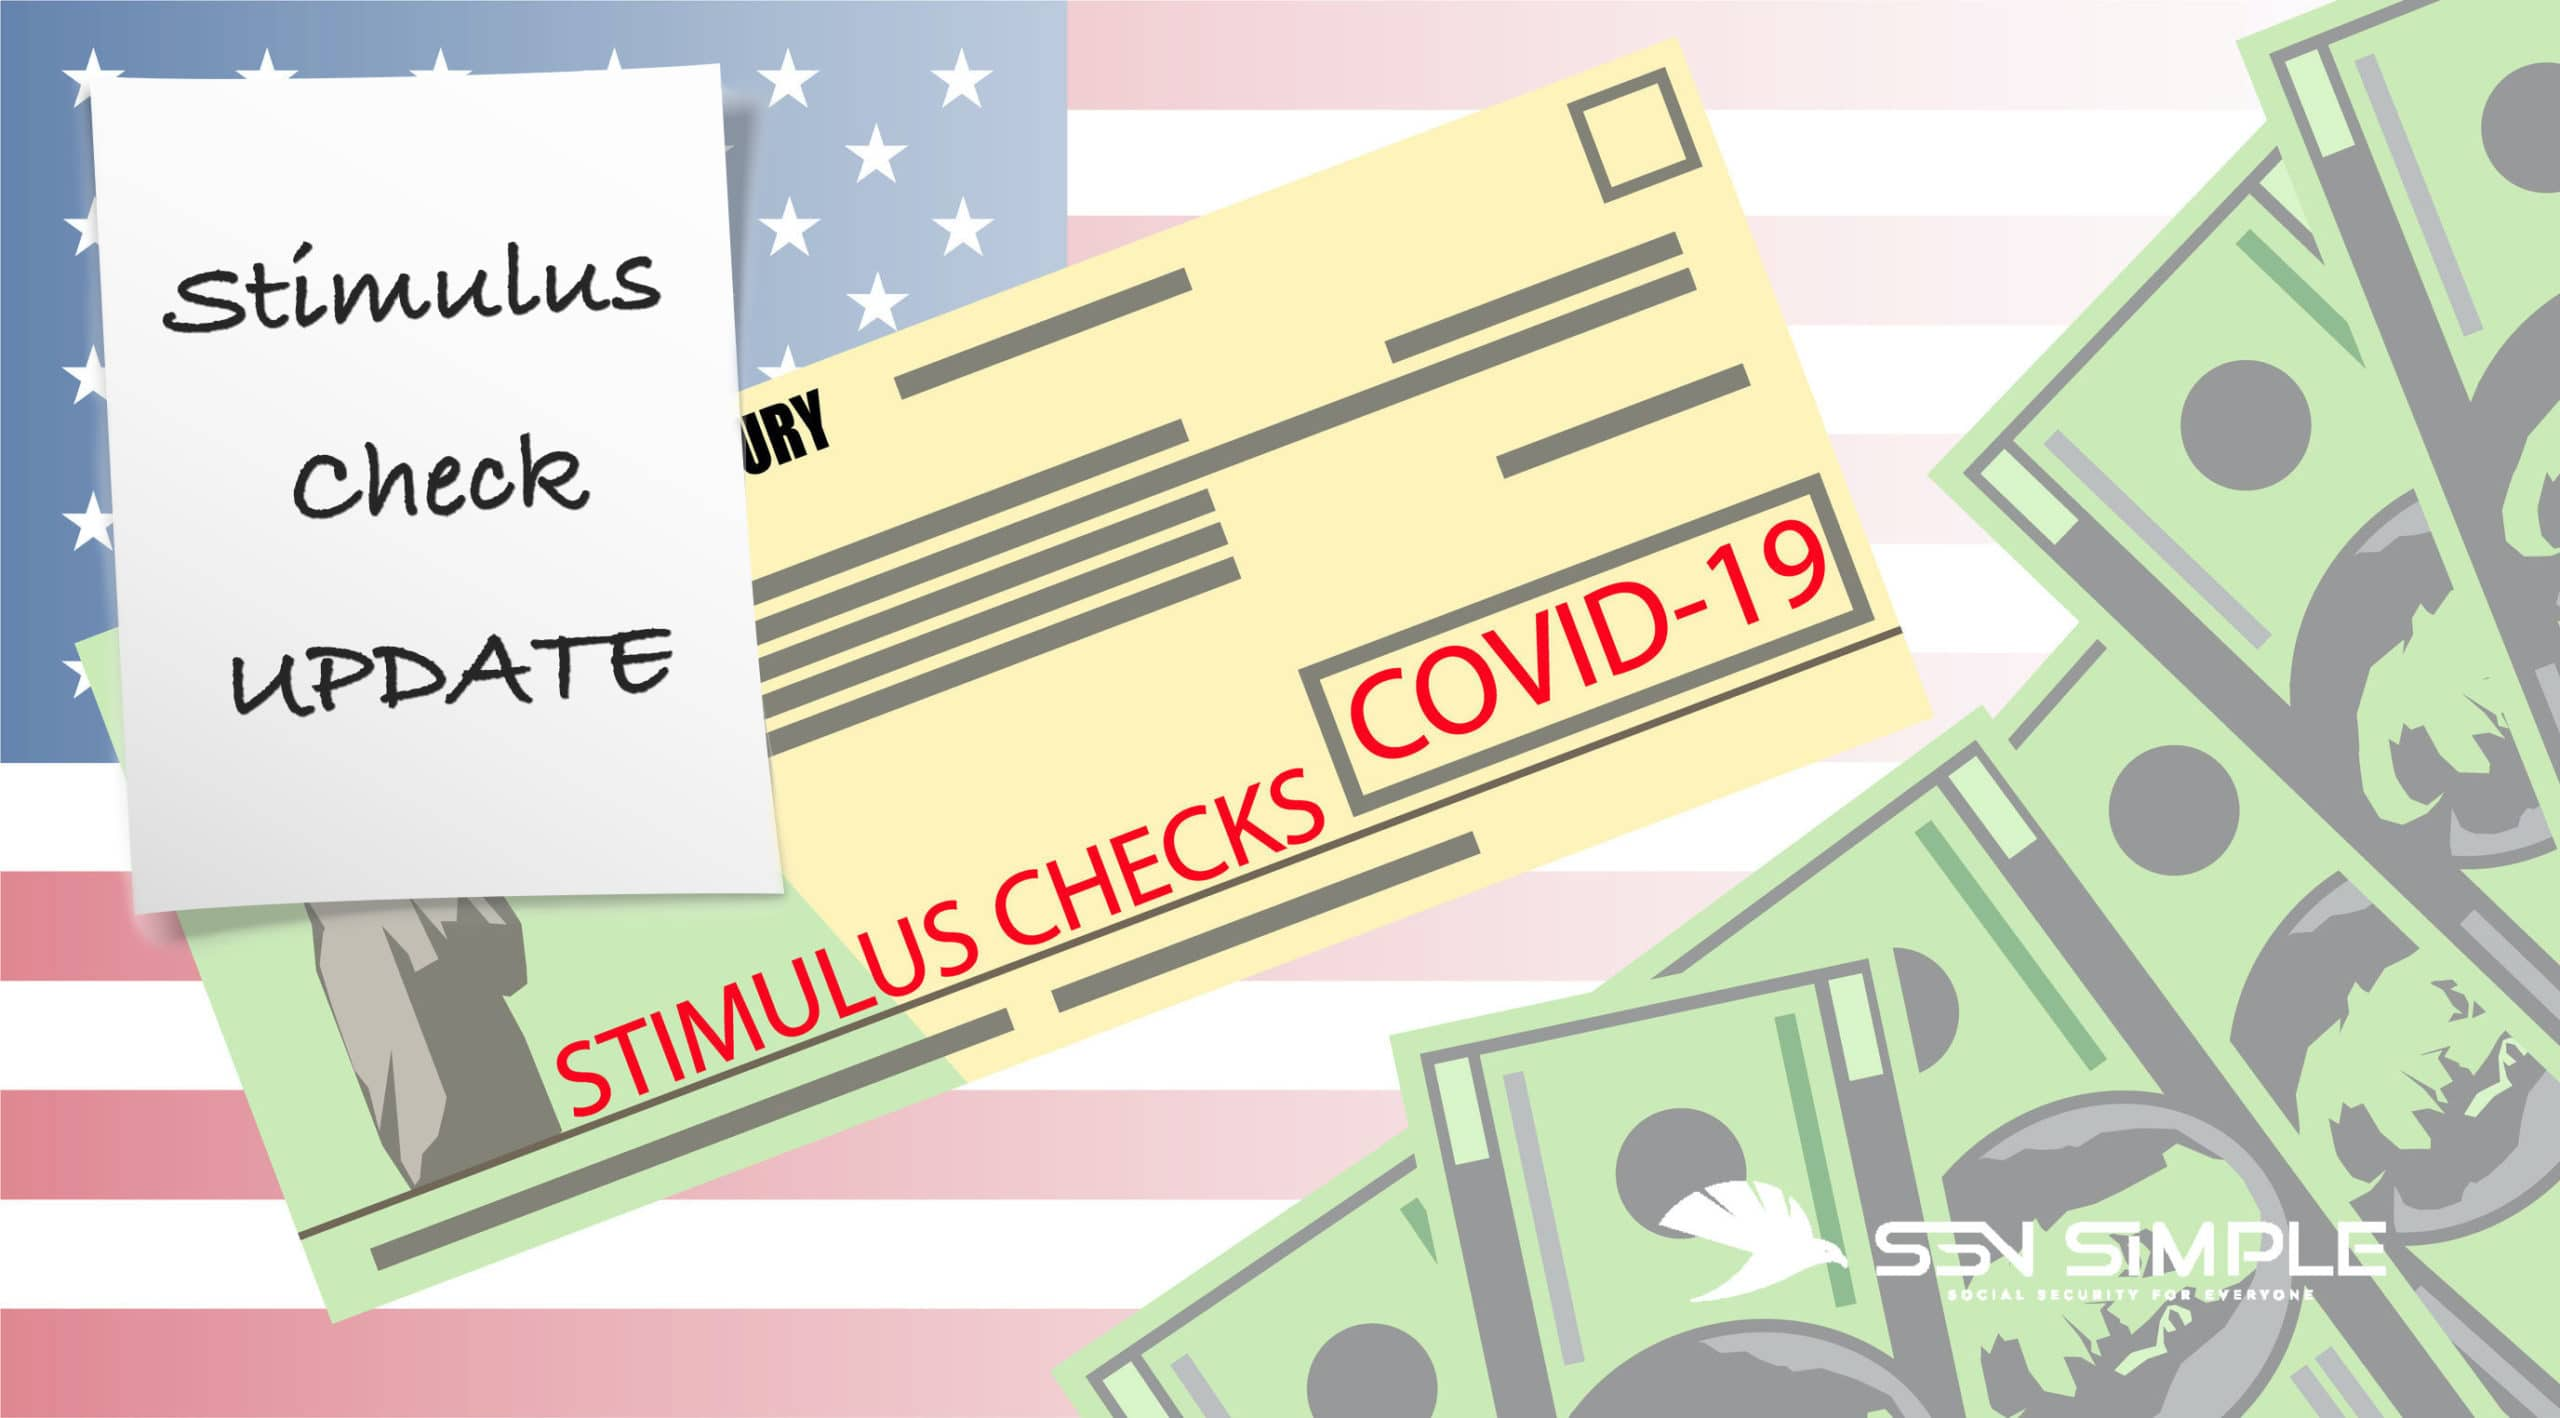 Second Stimulus Check Article